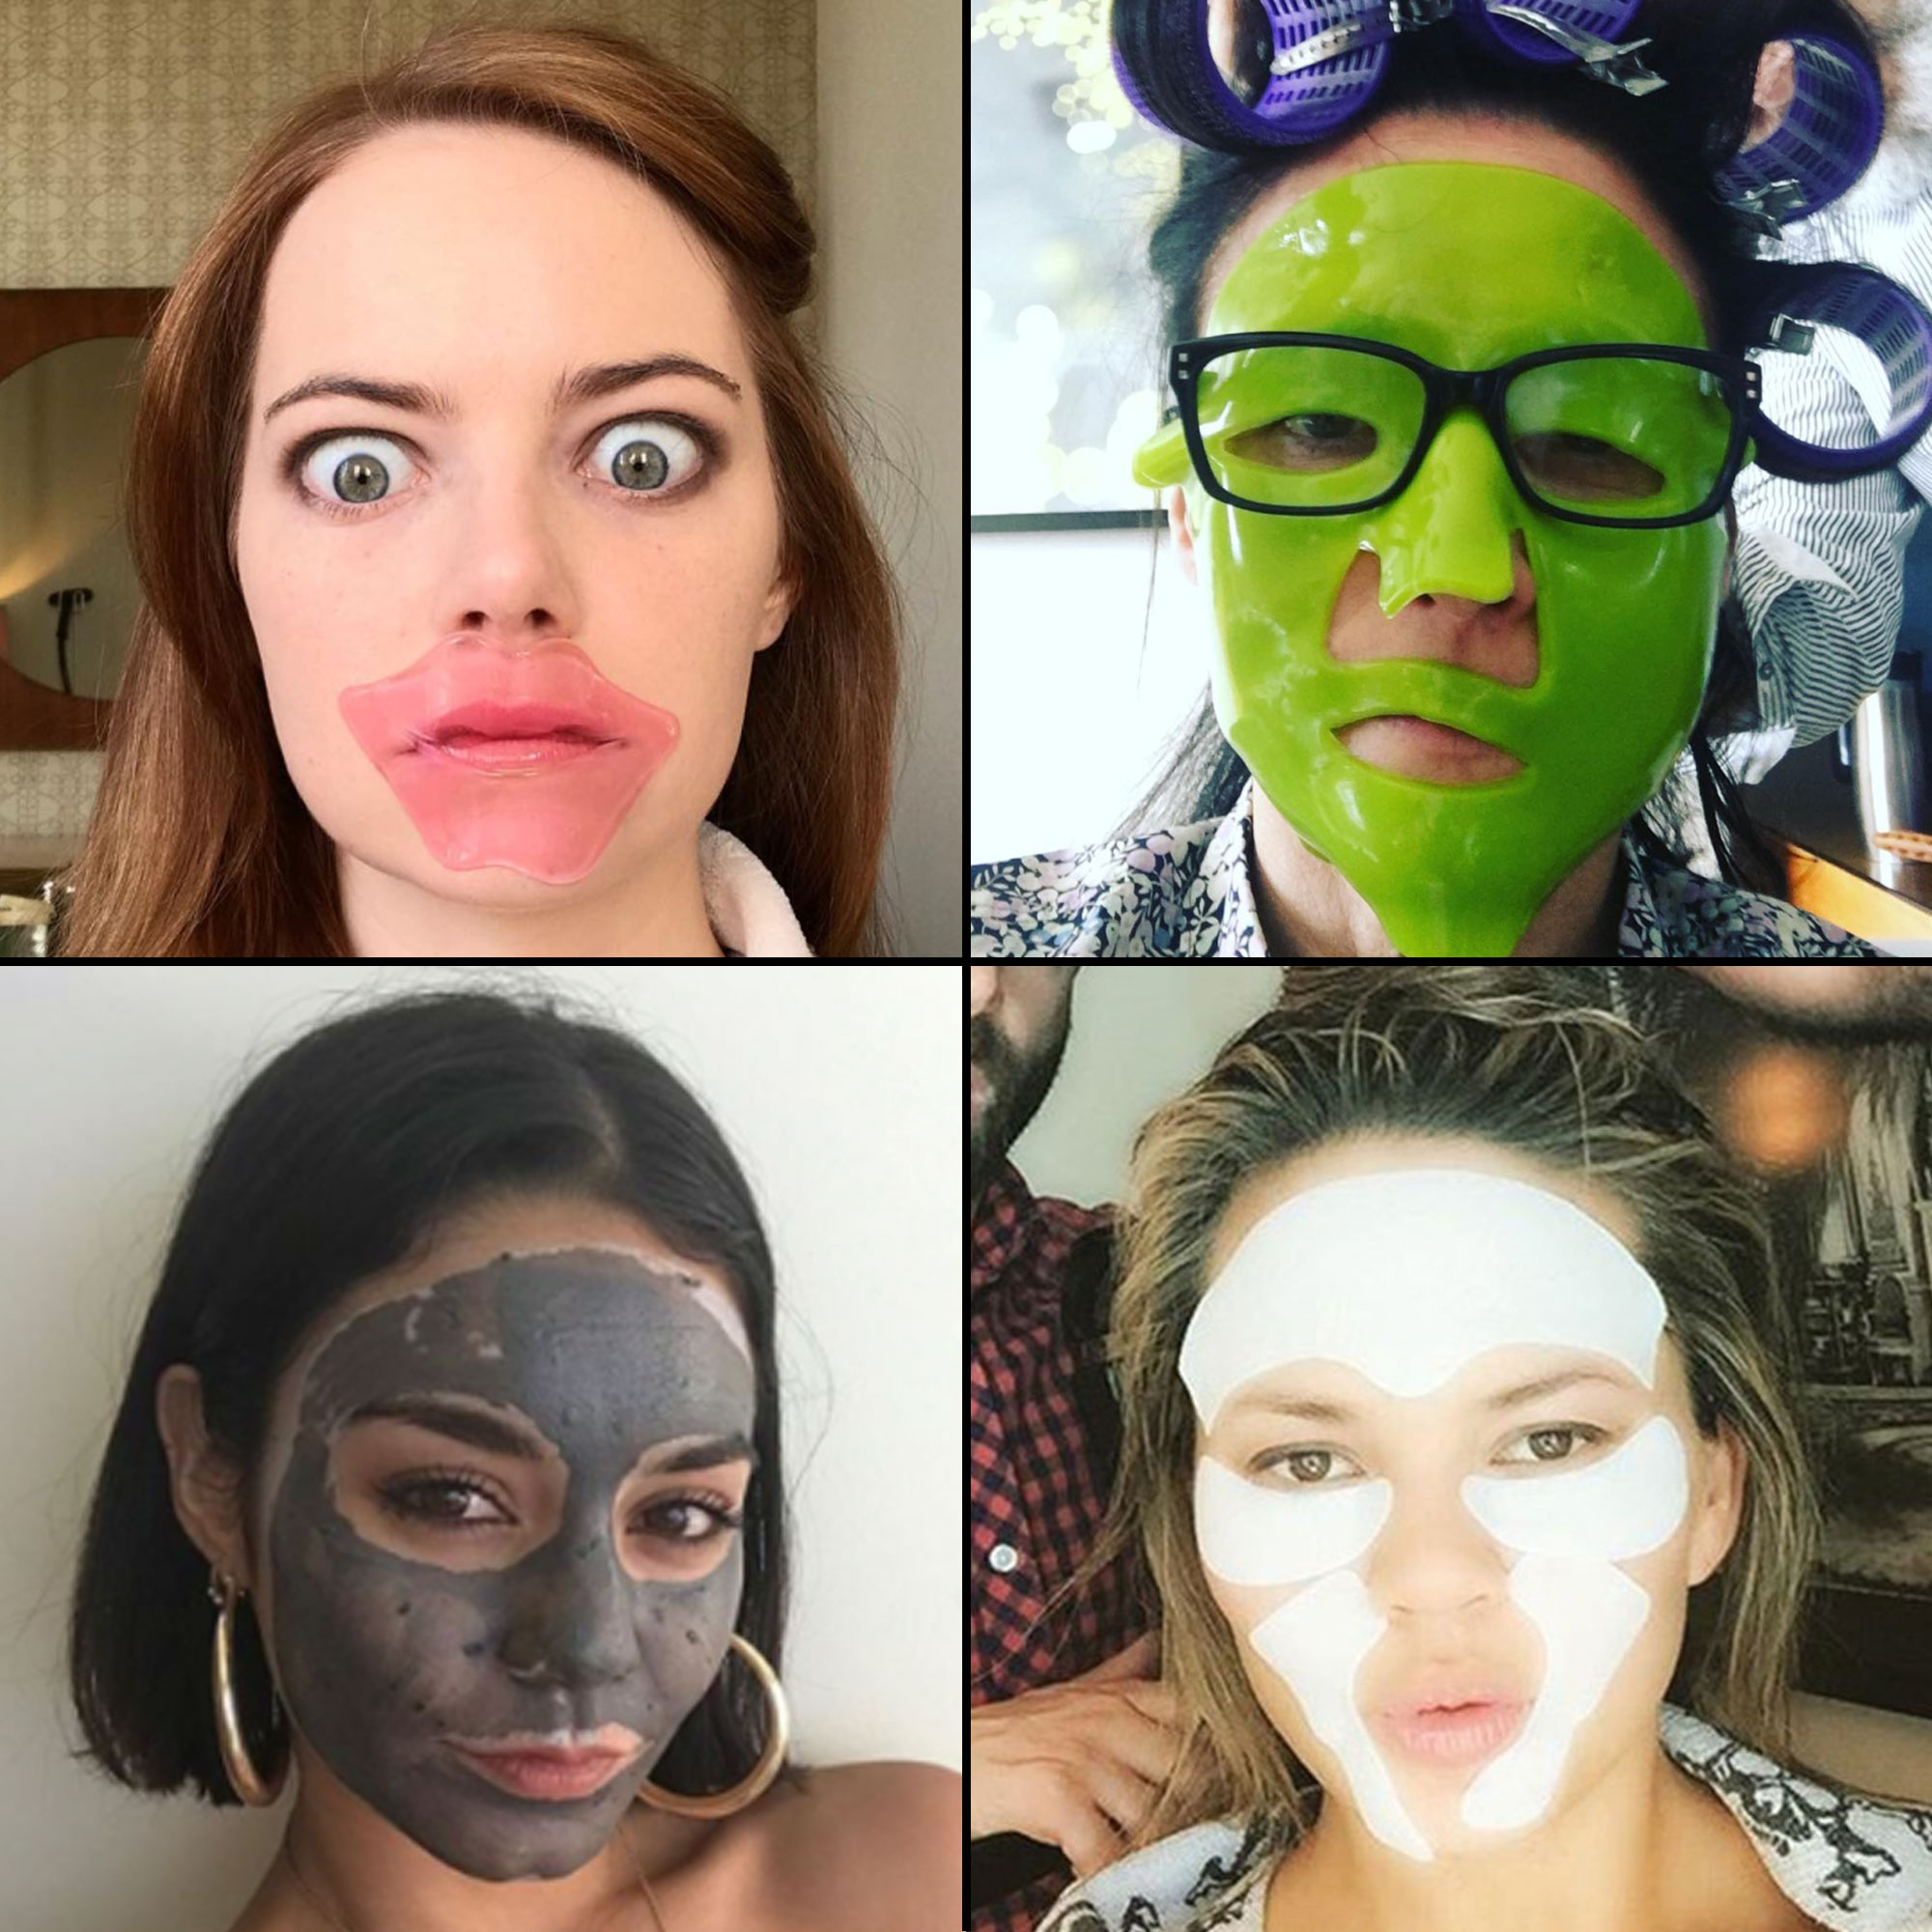 Emma Stone, Julia Louis-Dreyfus, Vanessa Hudgens and Chrissy Teigen Celeb Face Mask Selfies: From Sheet Masks to Eye Patches and More - When it comes to skincare, most products take weeks (or even months!) to start revealing results, but there is one category that offers instant gratification: the face mask. From clays and muds to sheets and patches, five to 30 minutes is usually all you'll need to start seeing the brightening, toning and calming effects.